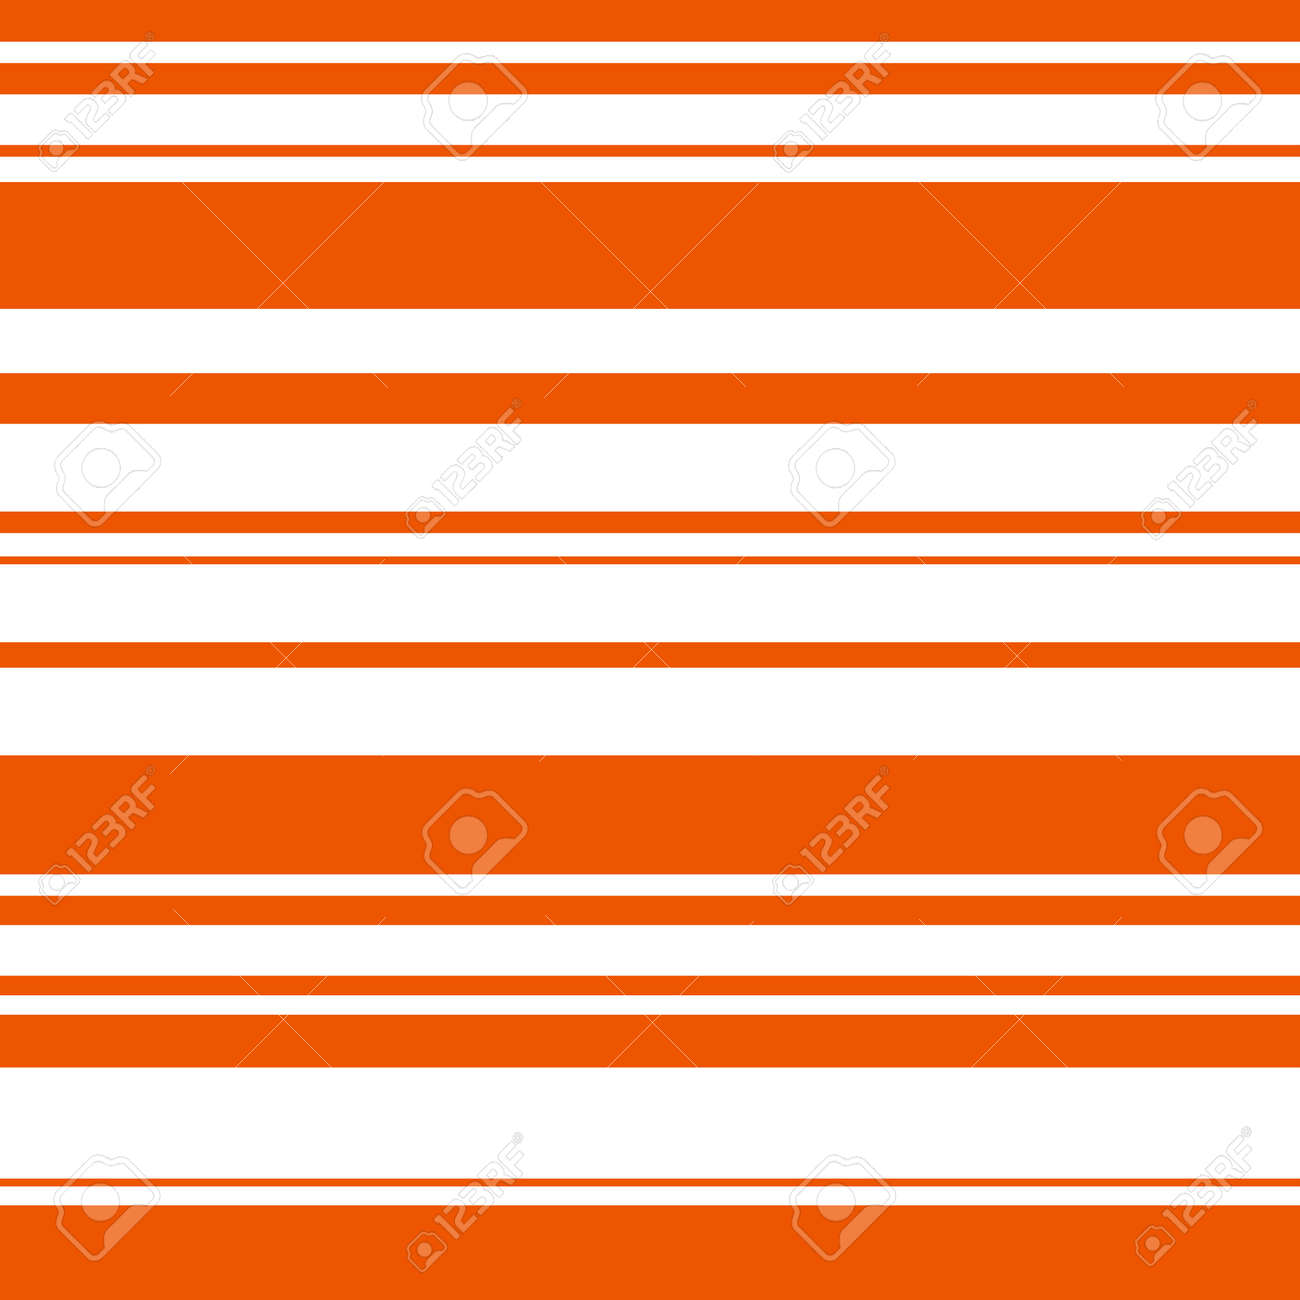 Happy Halloween Background. Seamless pattern. Collection of seamless patterns in the traditional holiday colors. - 44353680